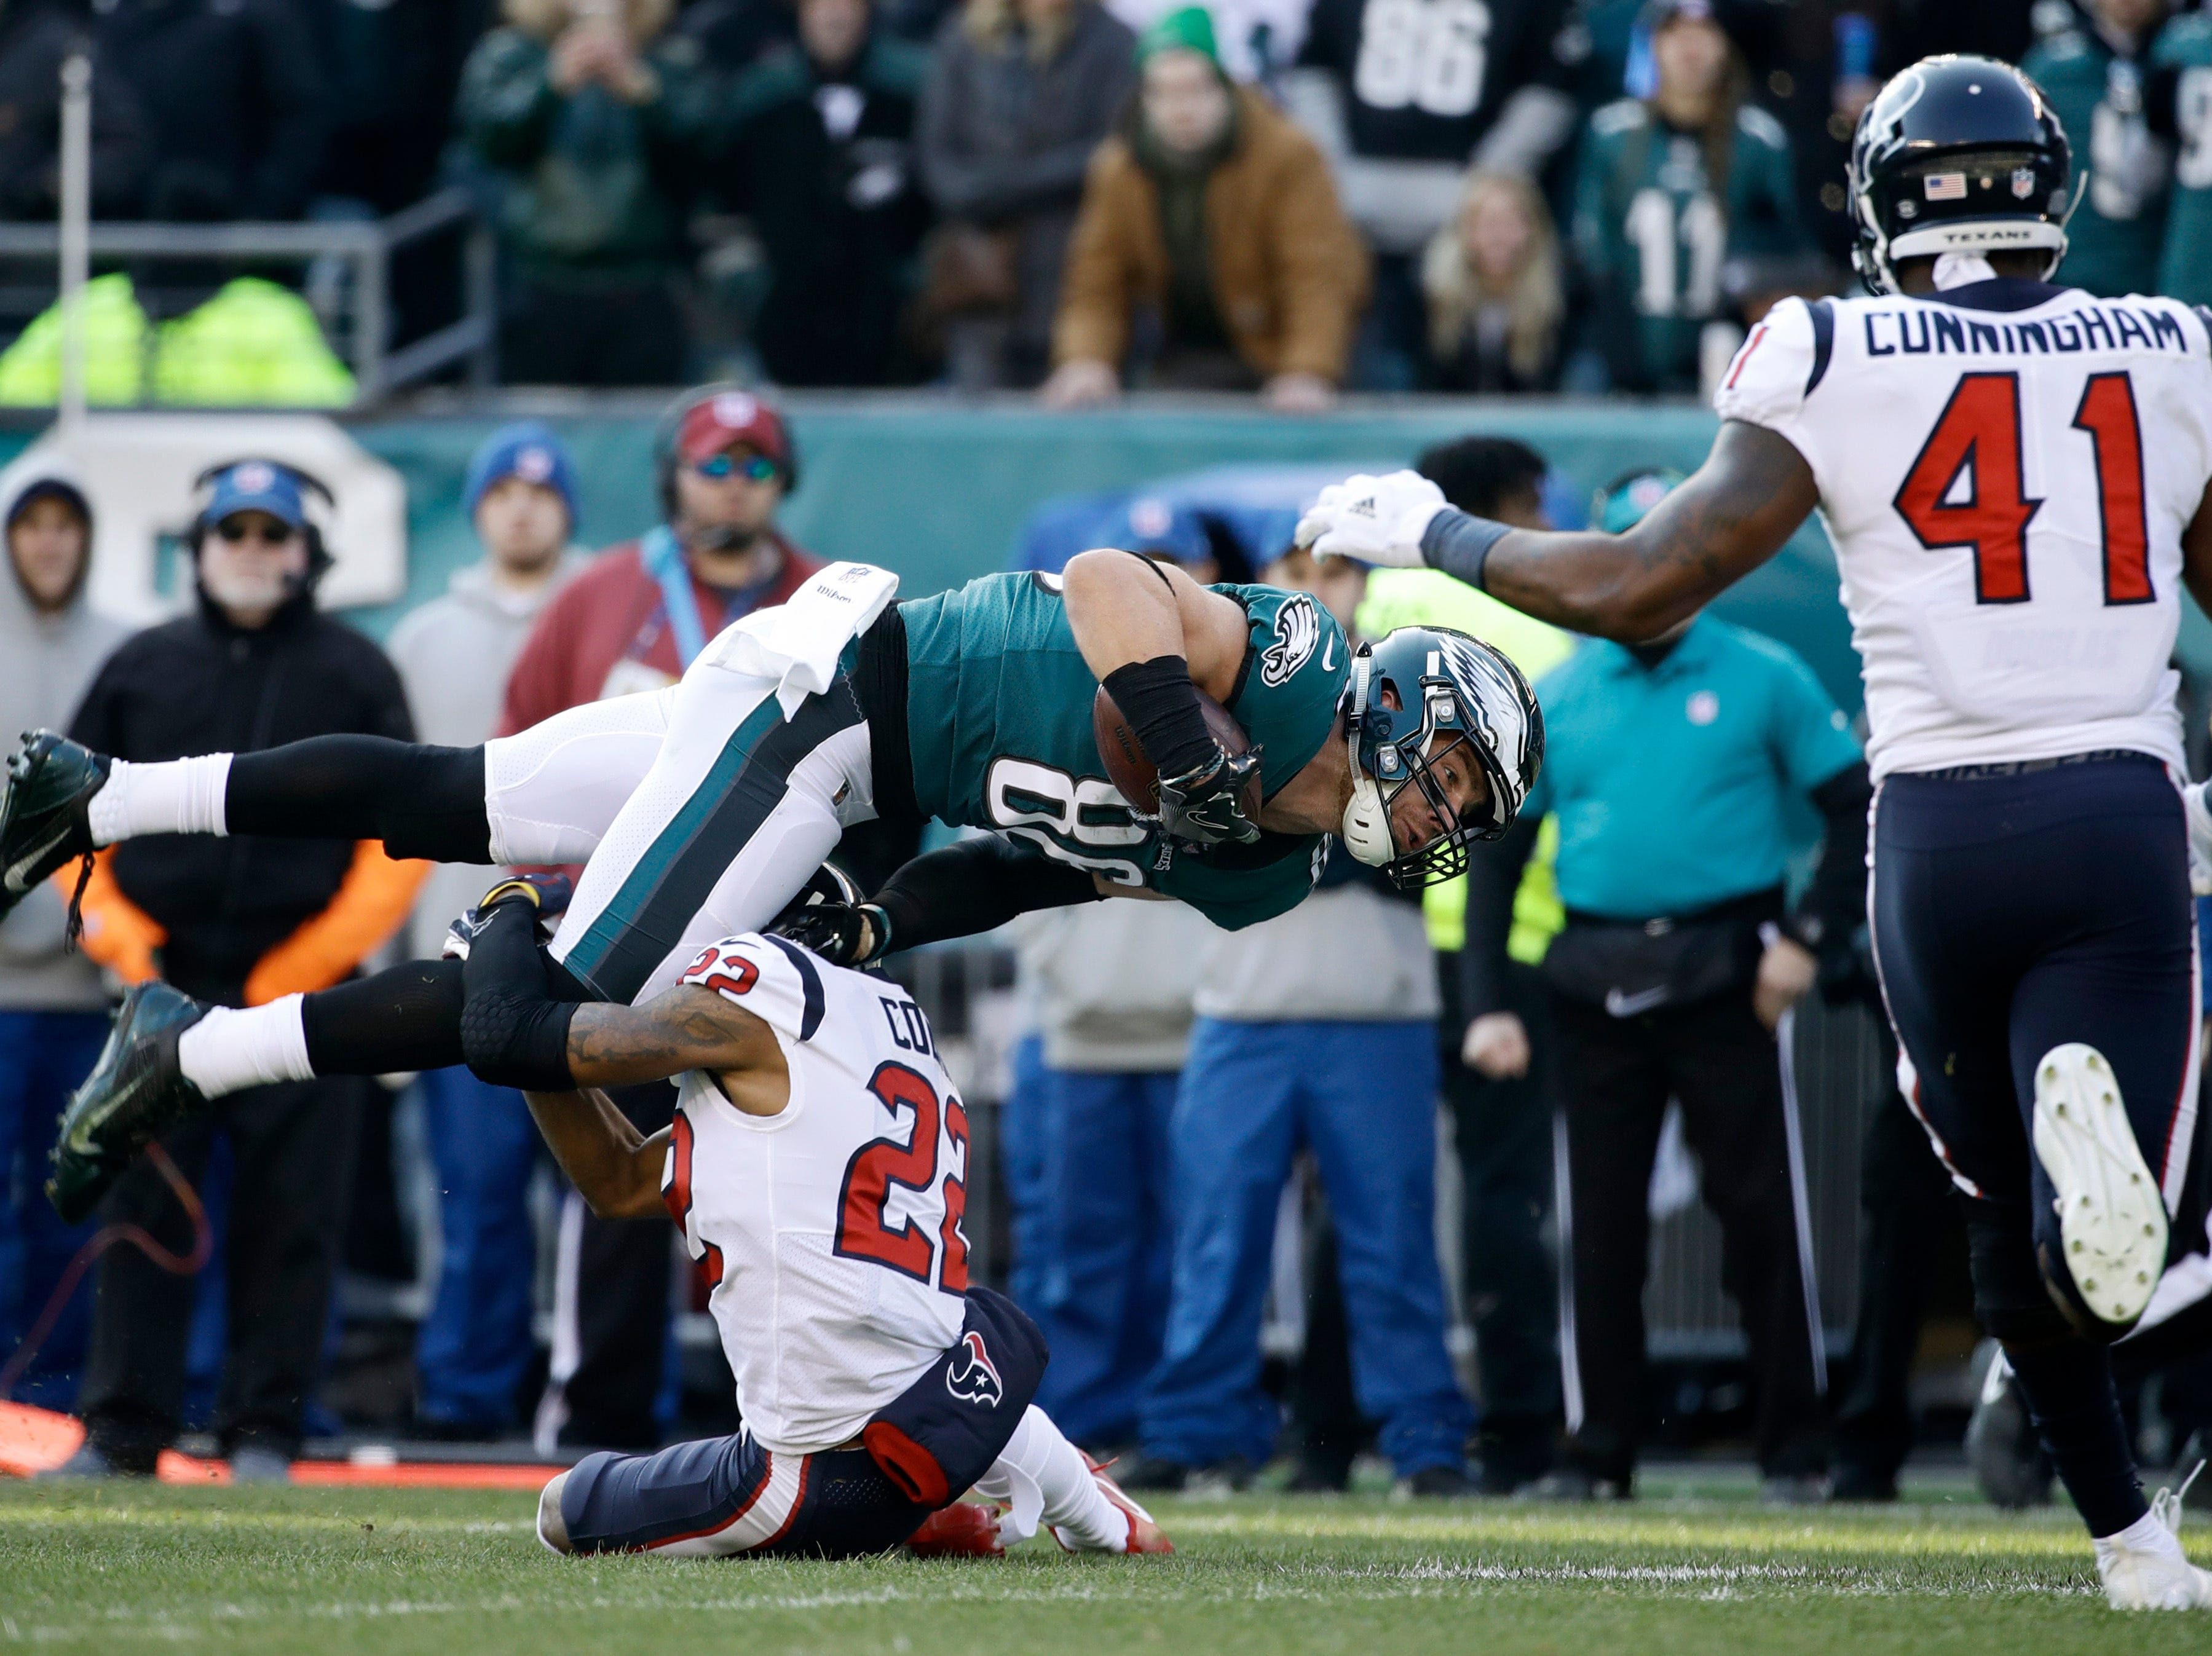 Philadelphia Eagles' Zach Ertz (86) is tackled by Houston Texans' Aaron Colvin (22) as Zach Cunningham (41) runs in during the first half of an NFL football game, Sunday, Dec. 23, 2018, in Philadelphia. (AP Photo/Matt Rourke)